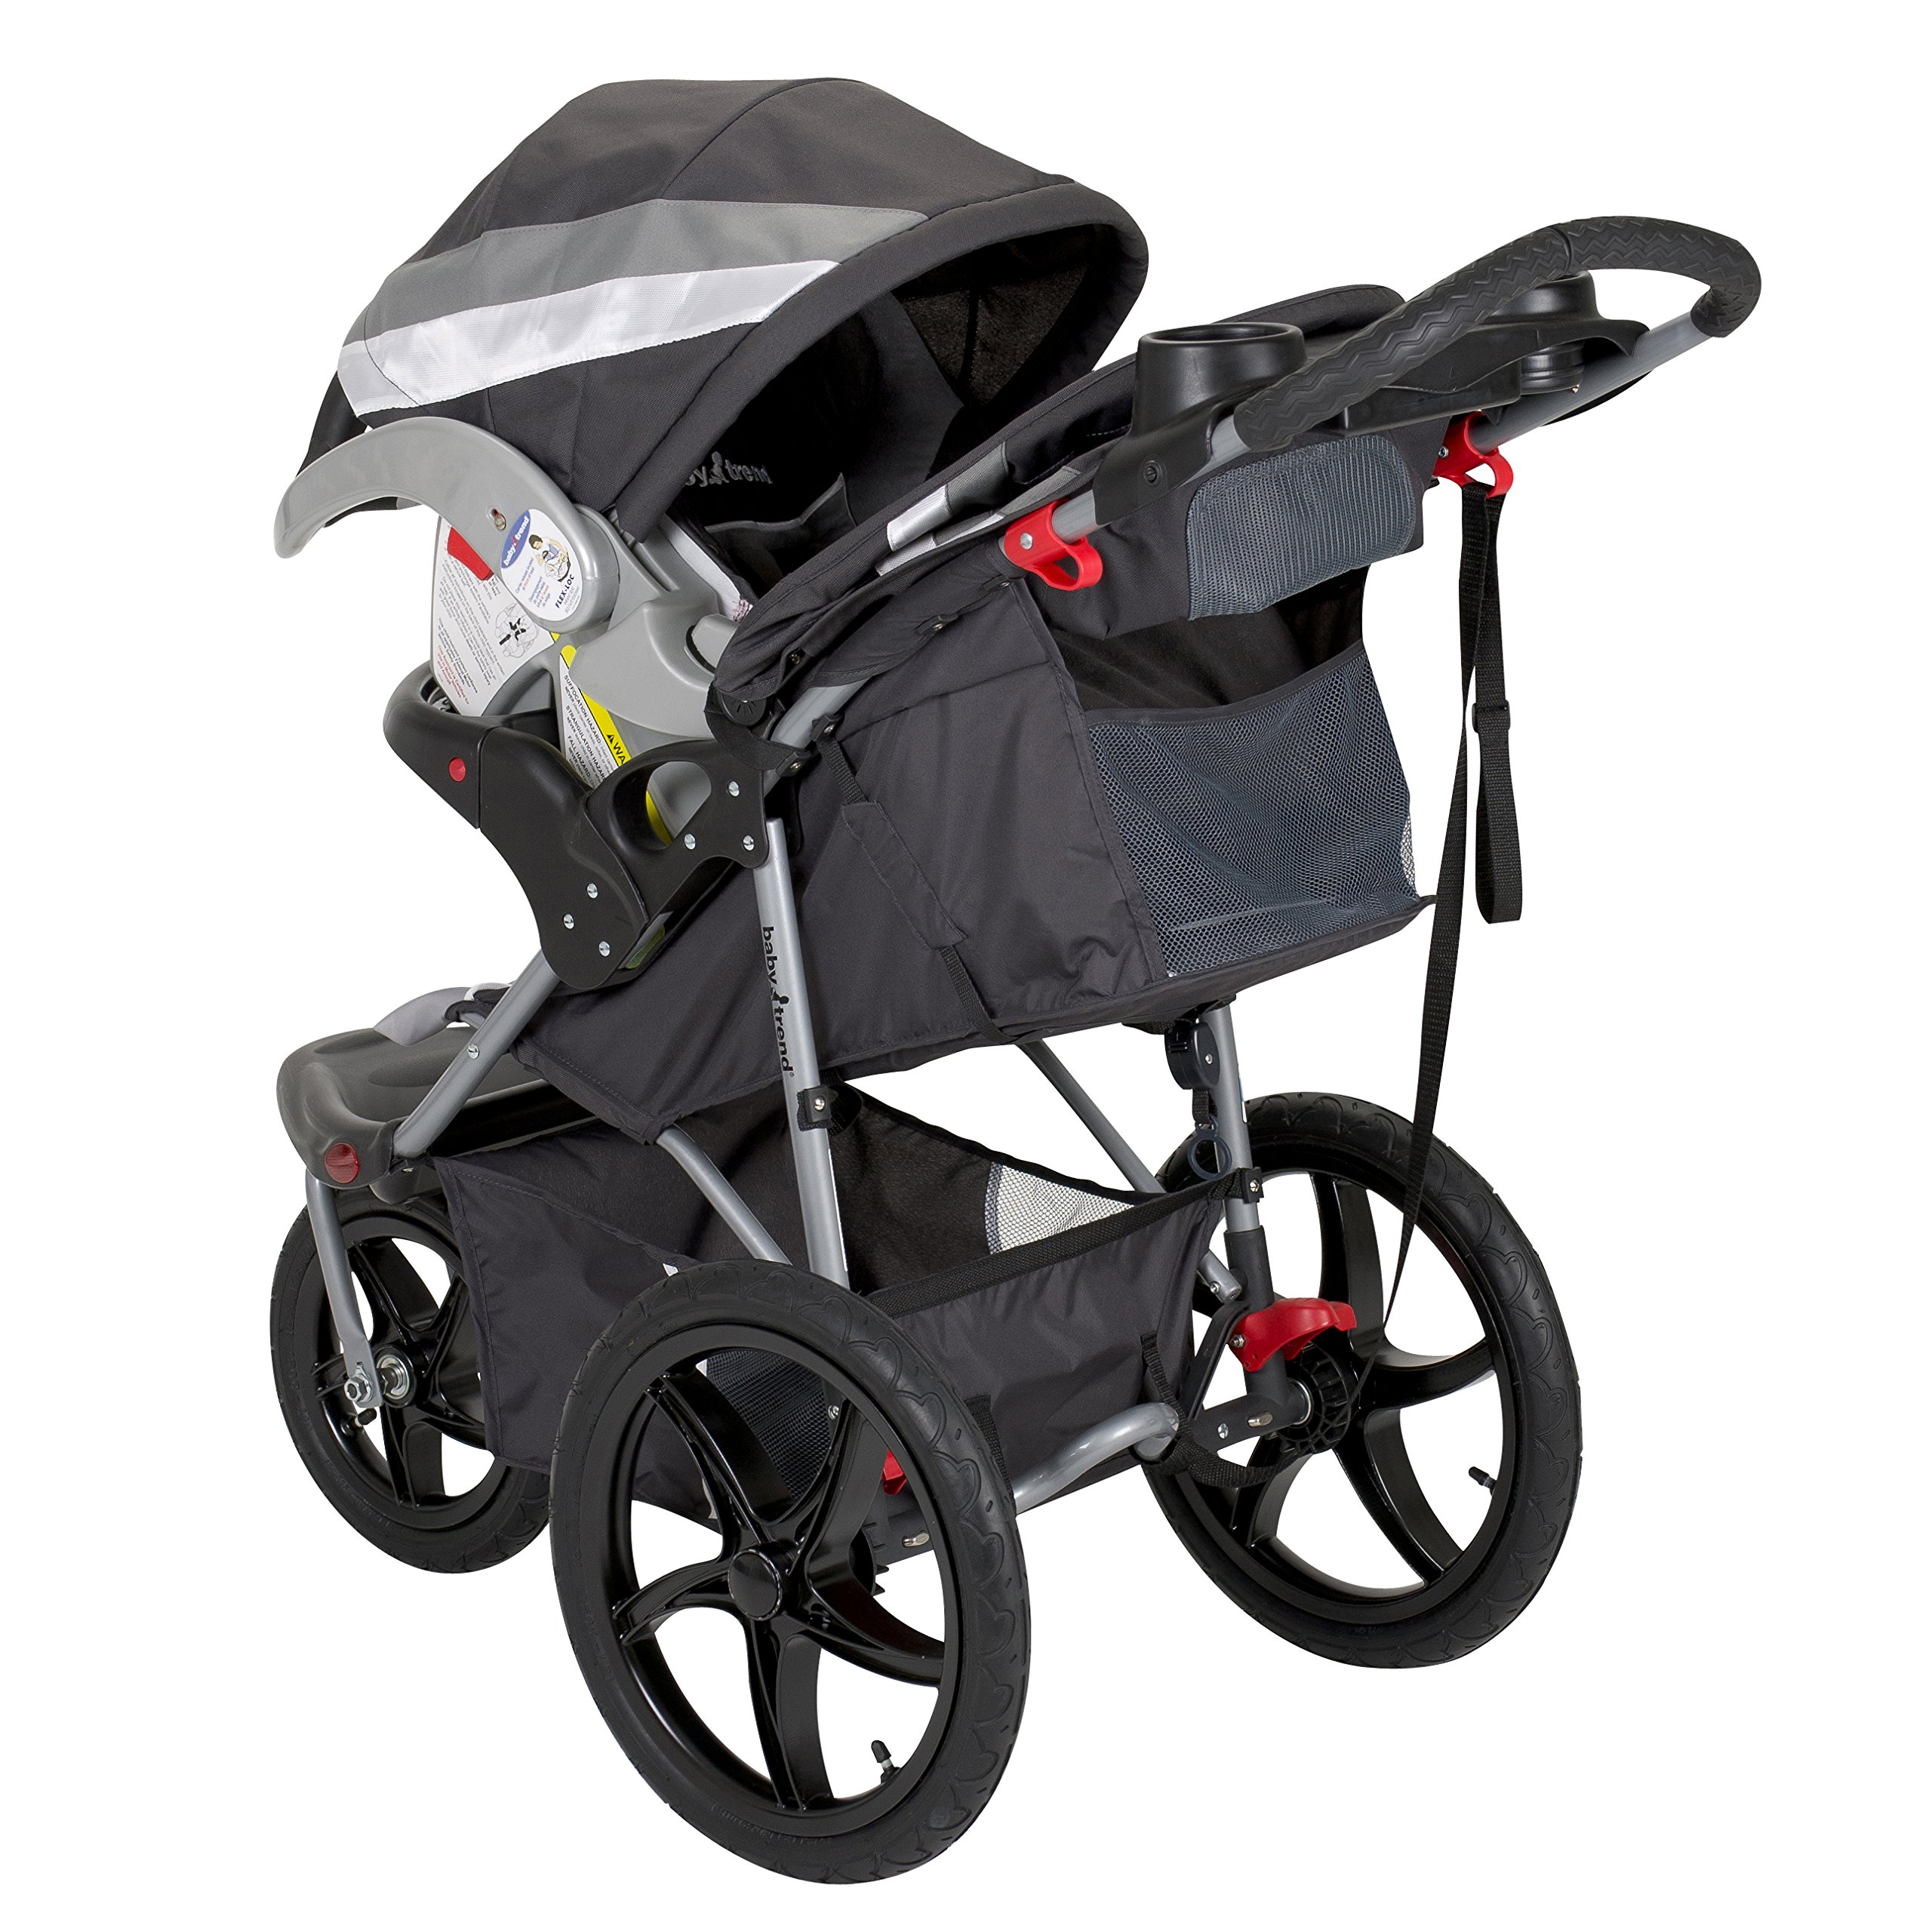 Baby Trend Range Jogging Stroller, Liberty by Baby Trend (Image #2)